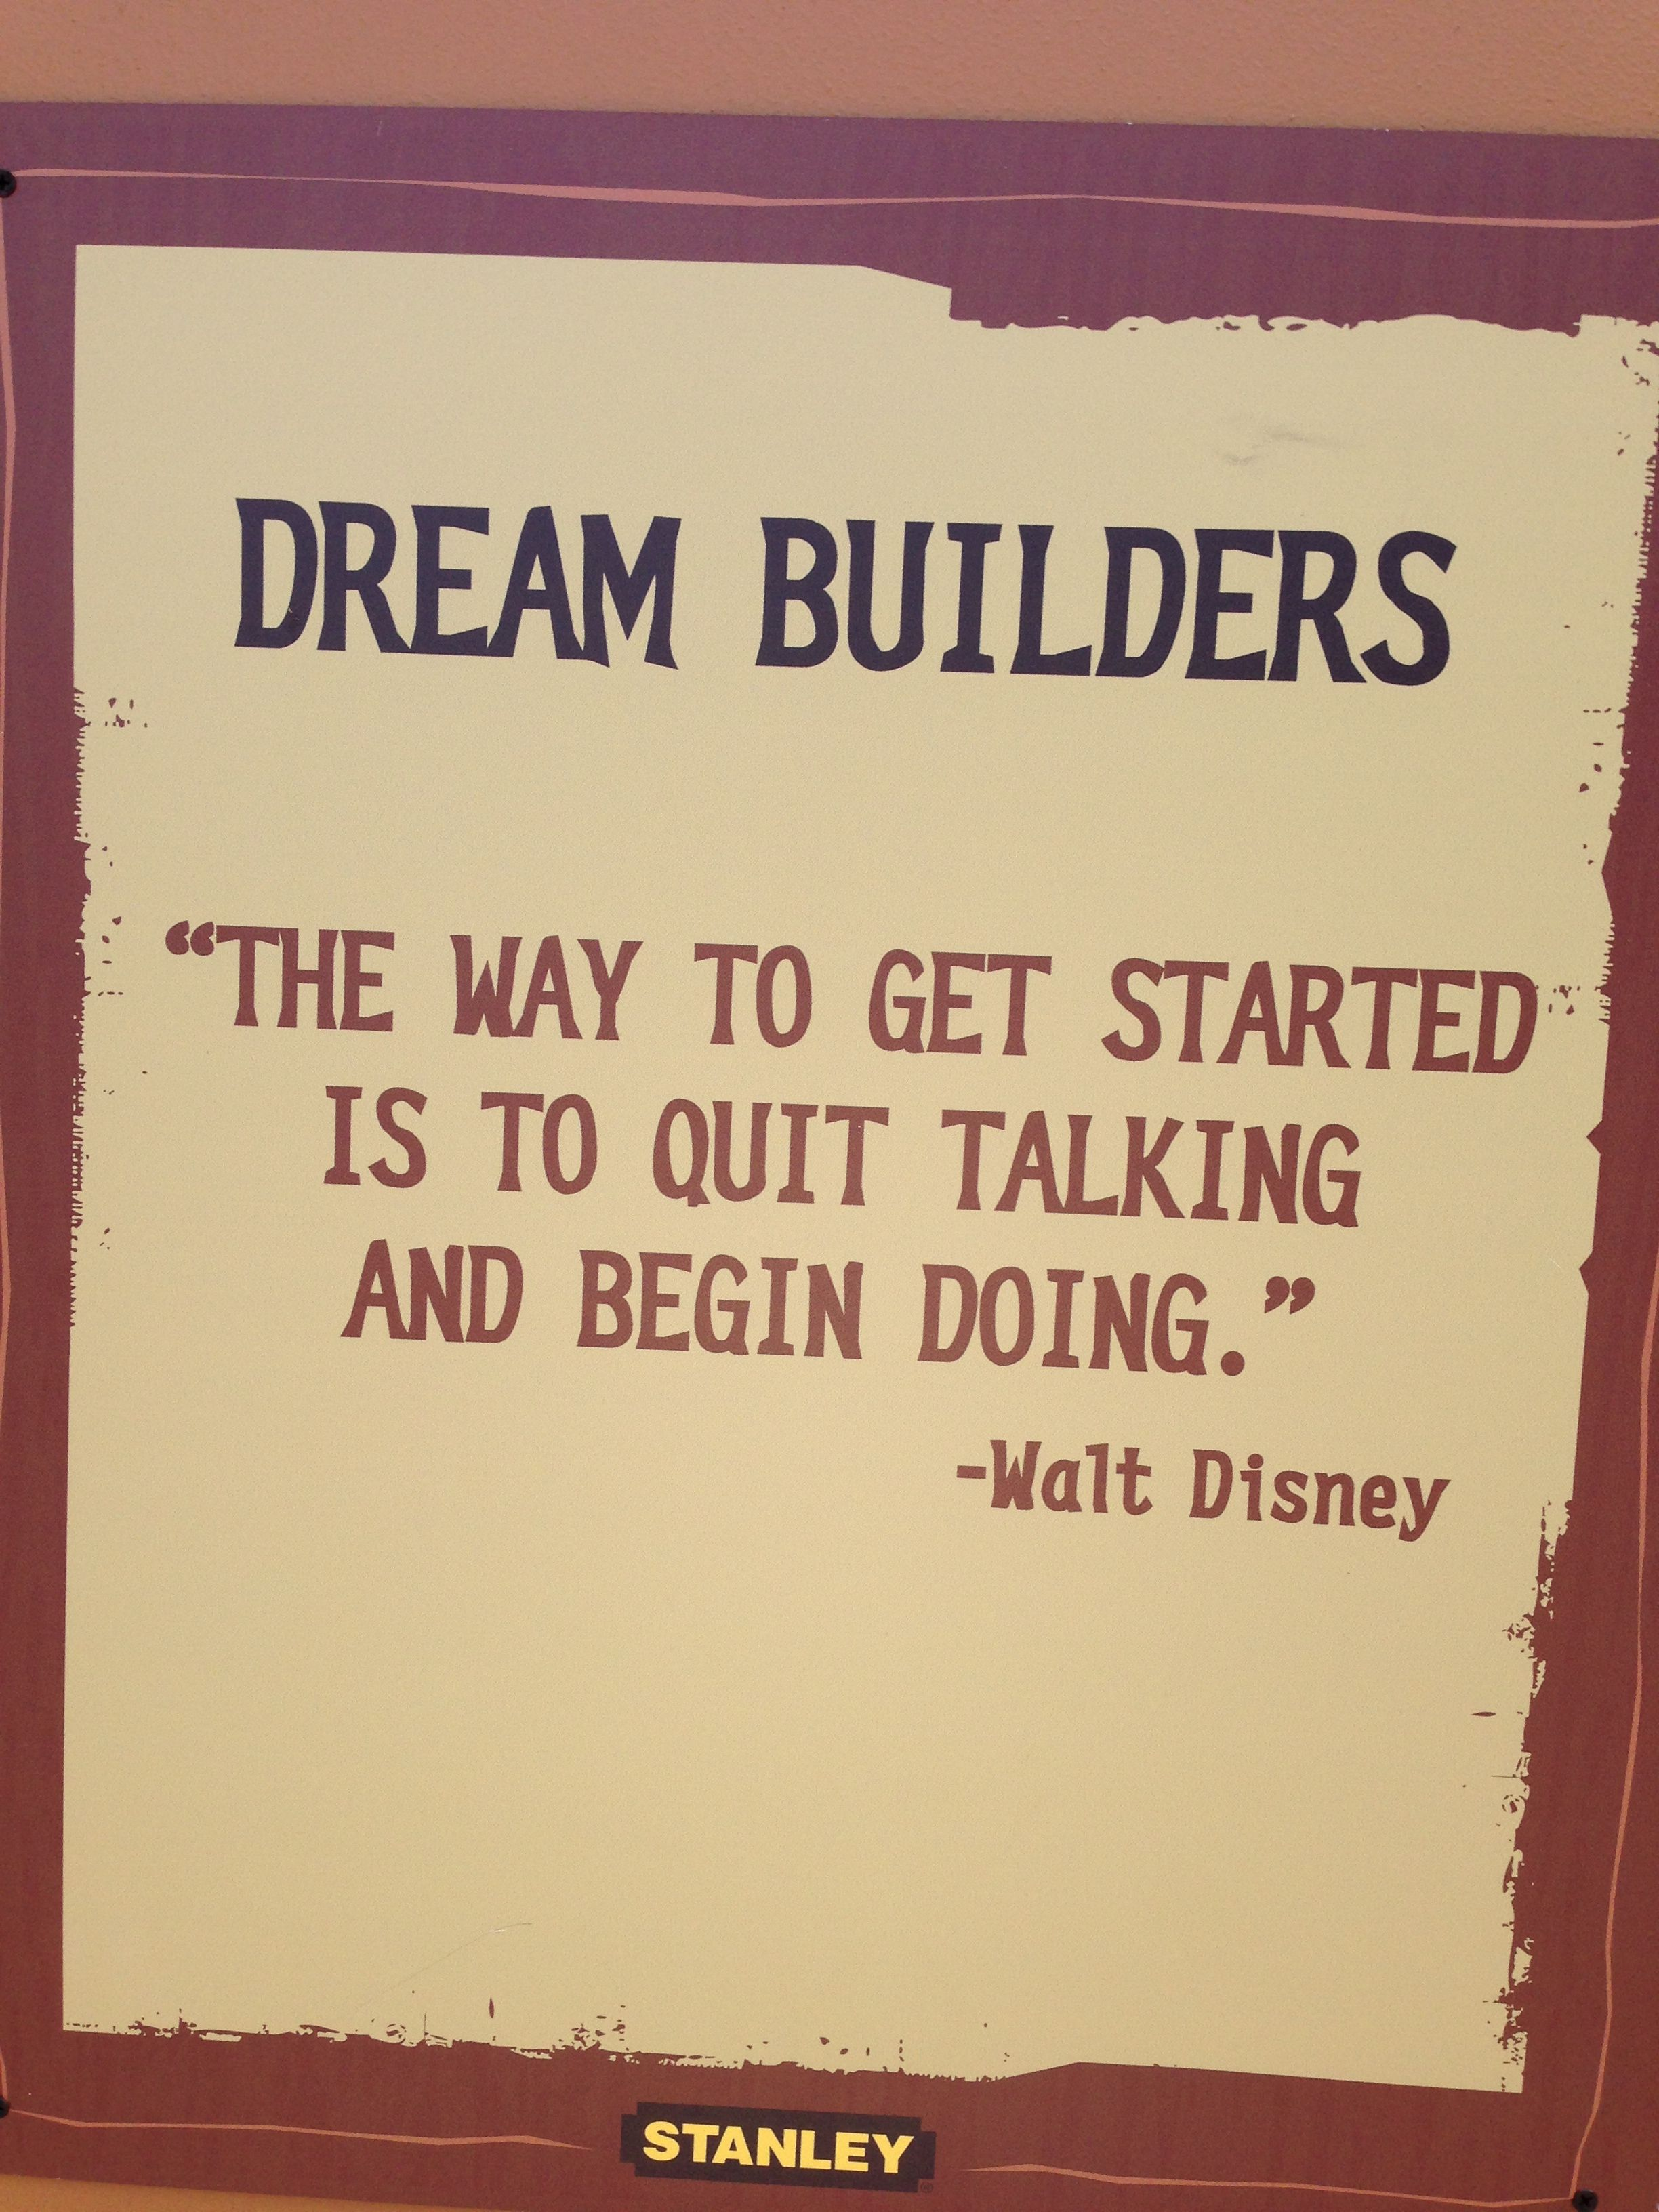 Construction Quotes Walt Disney Quotes On Board At Construction Are In Africa At